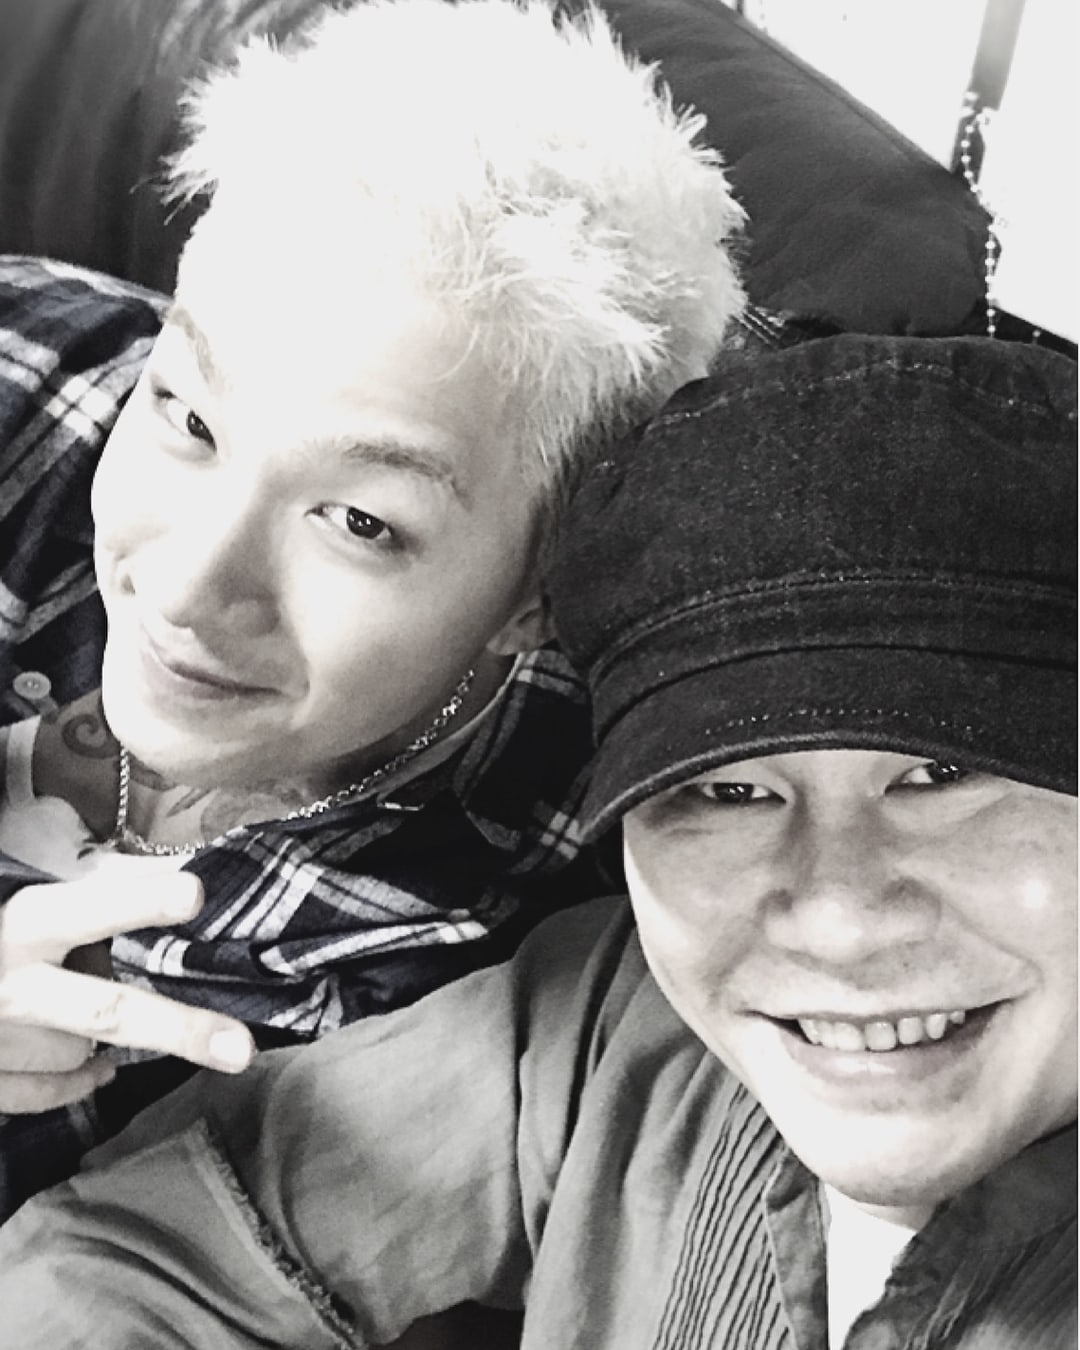 Yang Hyun Suk Bids Adieu To BIGBANG's Taeyang Ahead of Military Enlistment